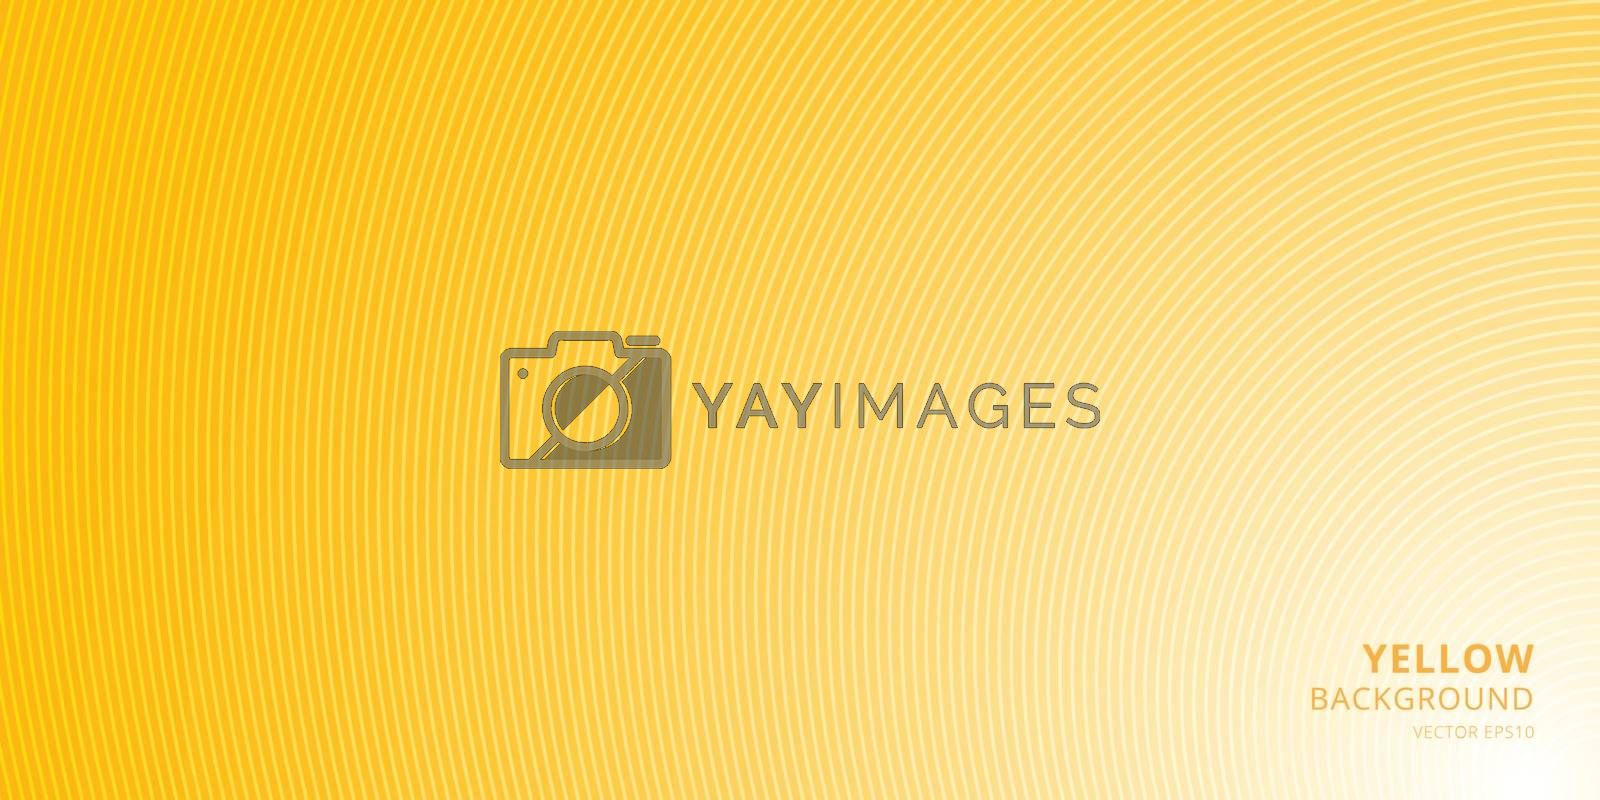 Smooth light yellow background with curved lines pattern texture by phochi